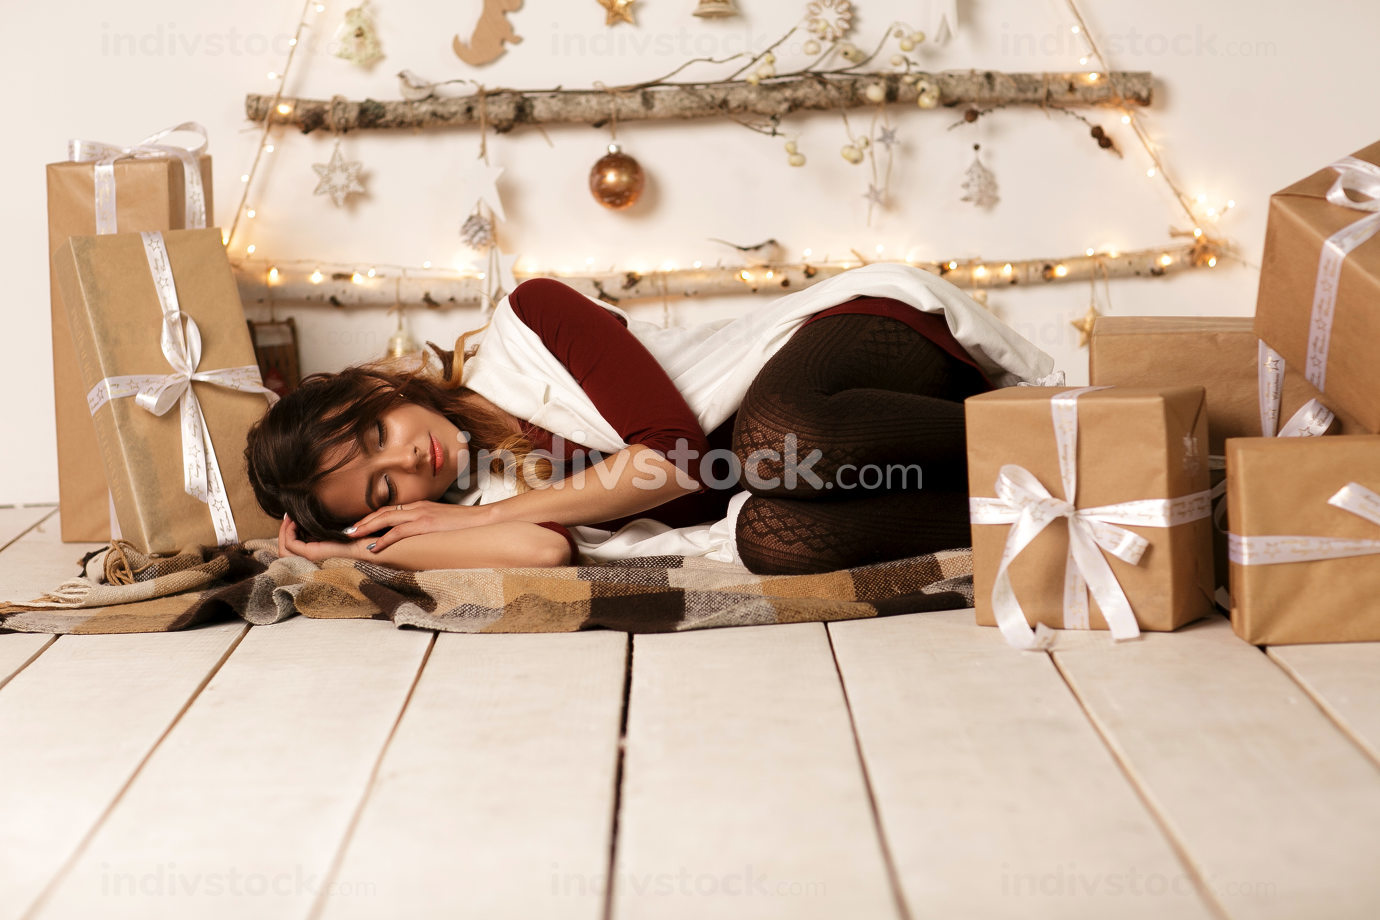 Adorable cute ittle girl sleeping under the Christmas tree by many Christmas gifts